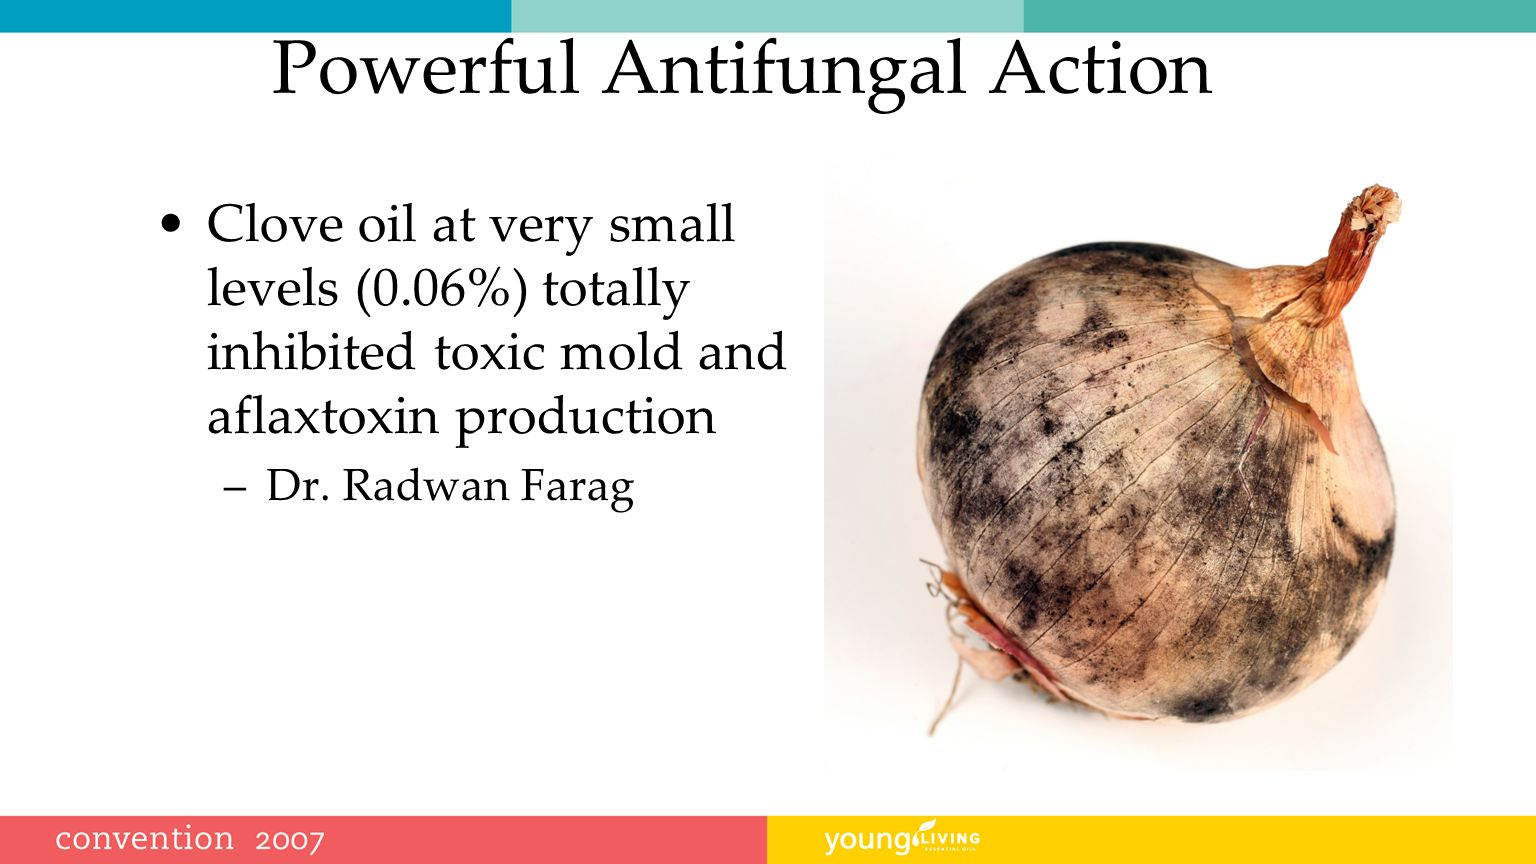 Powerful Antifungal Action